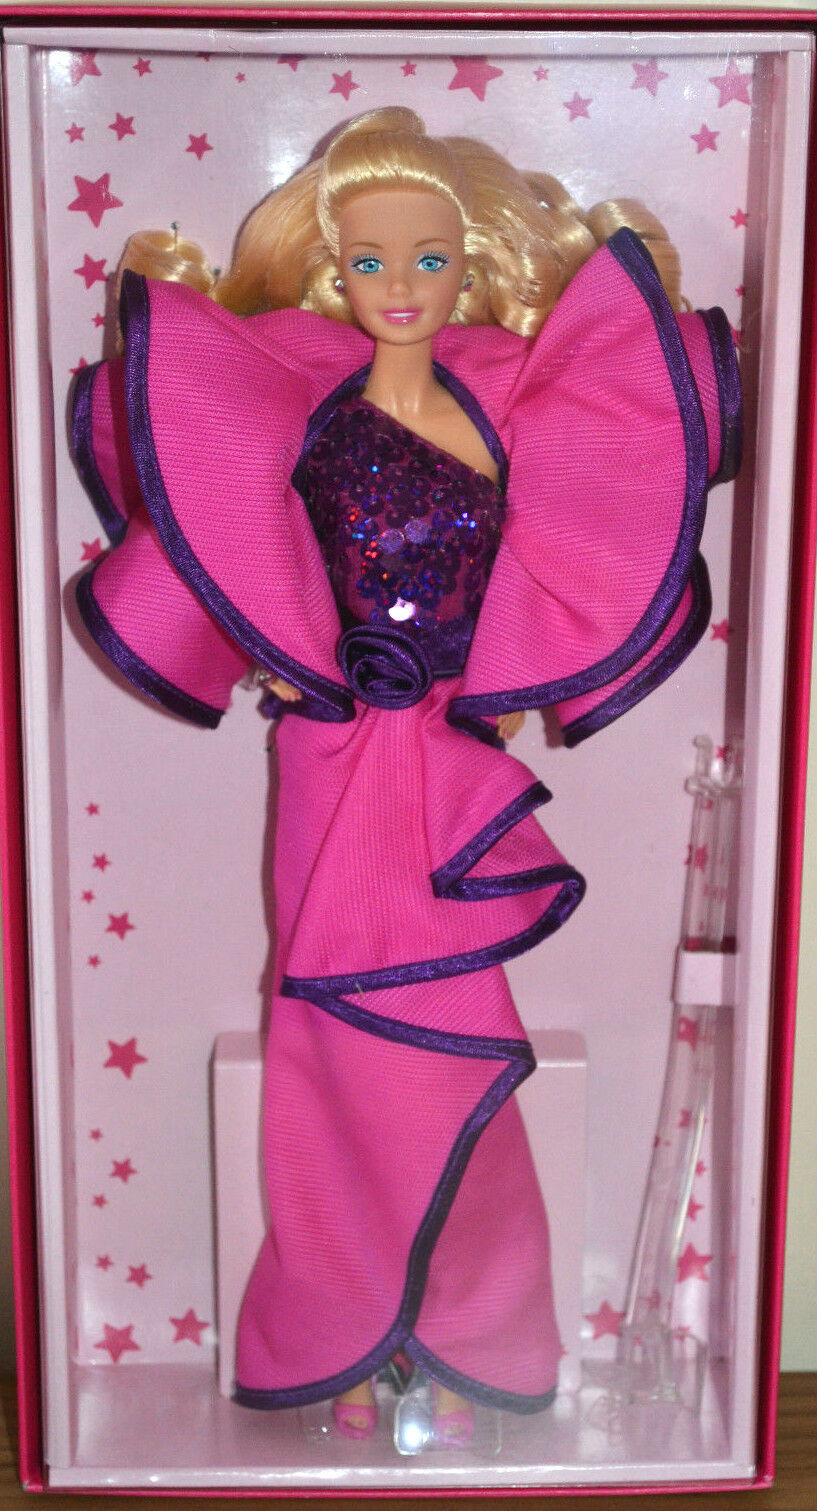 BARBIE DREAM DATE SUPERSTAR NRFB - oro LABEL new model doll collection Mattel